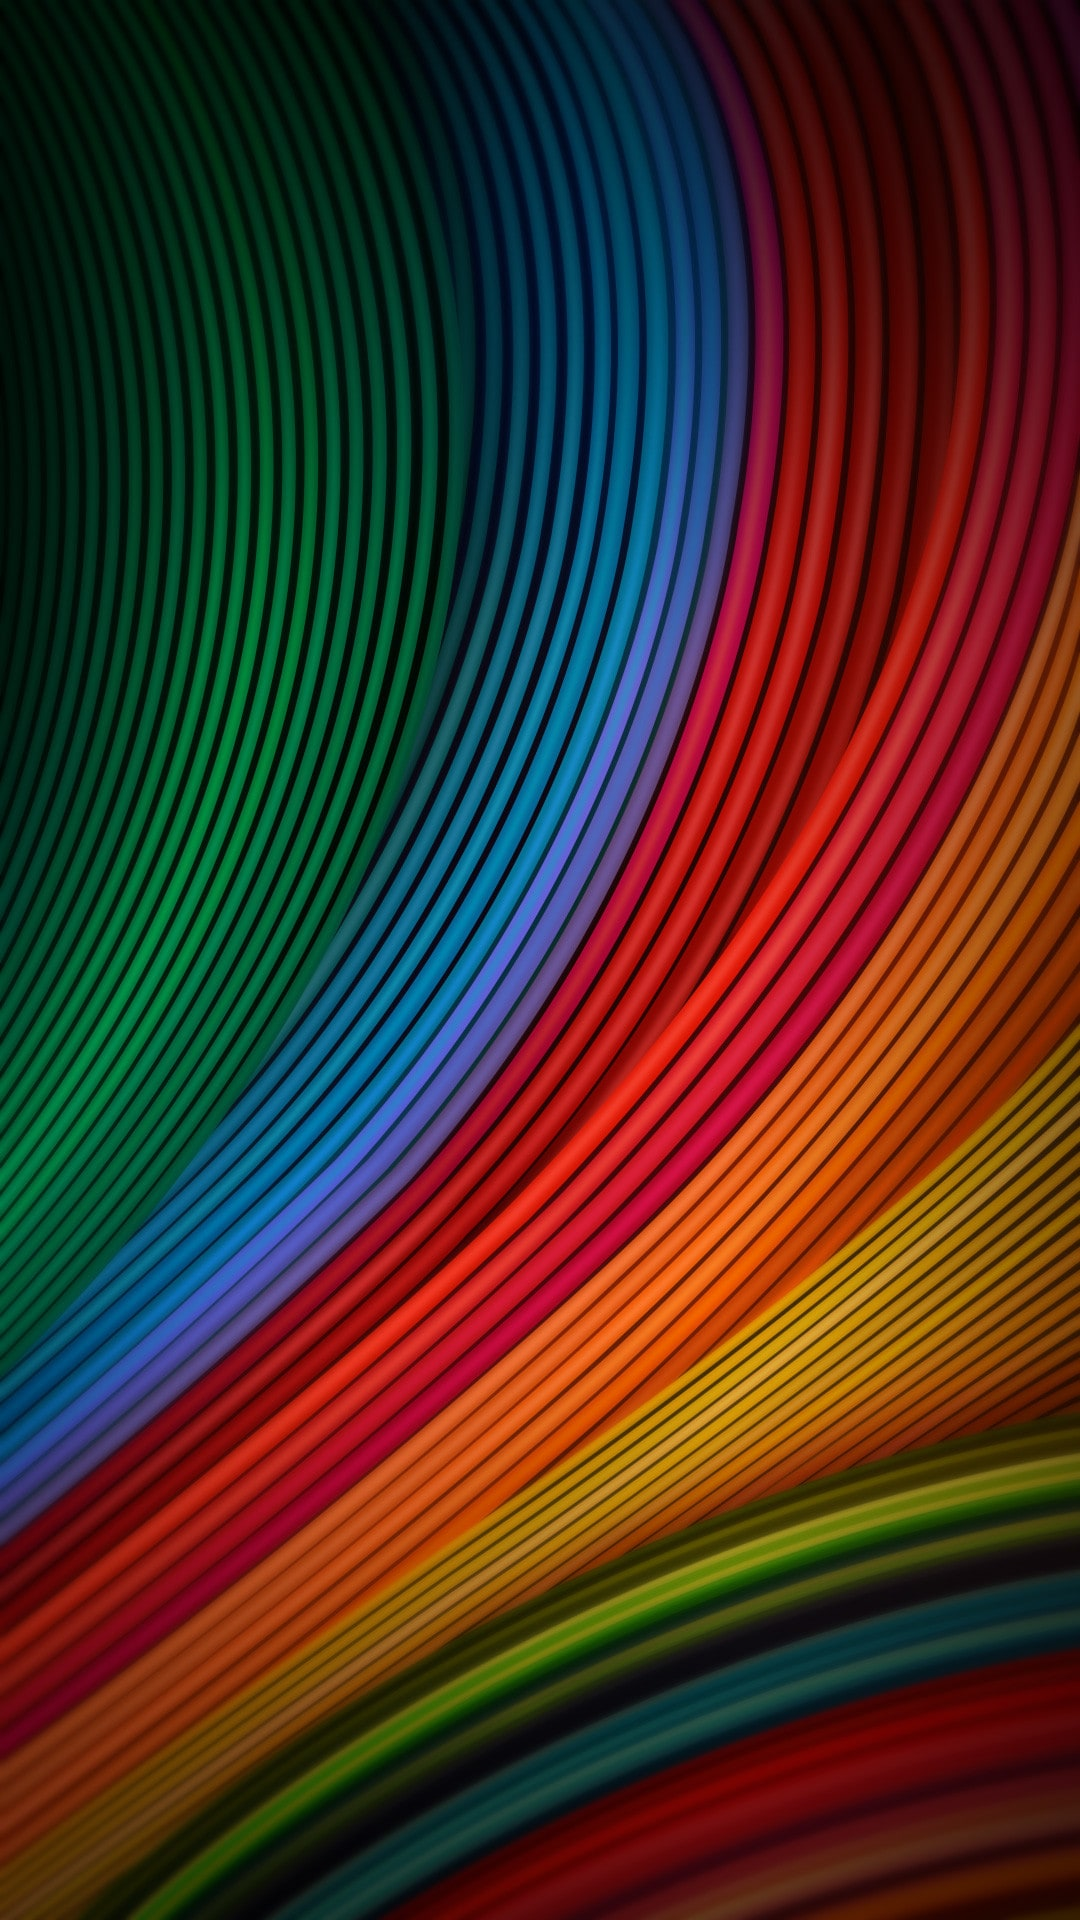 cool phone wallpapers 06 of 10 with colorful waves for for